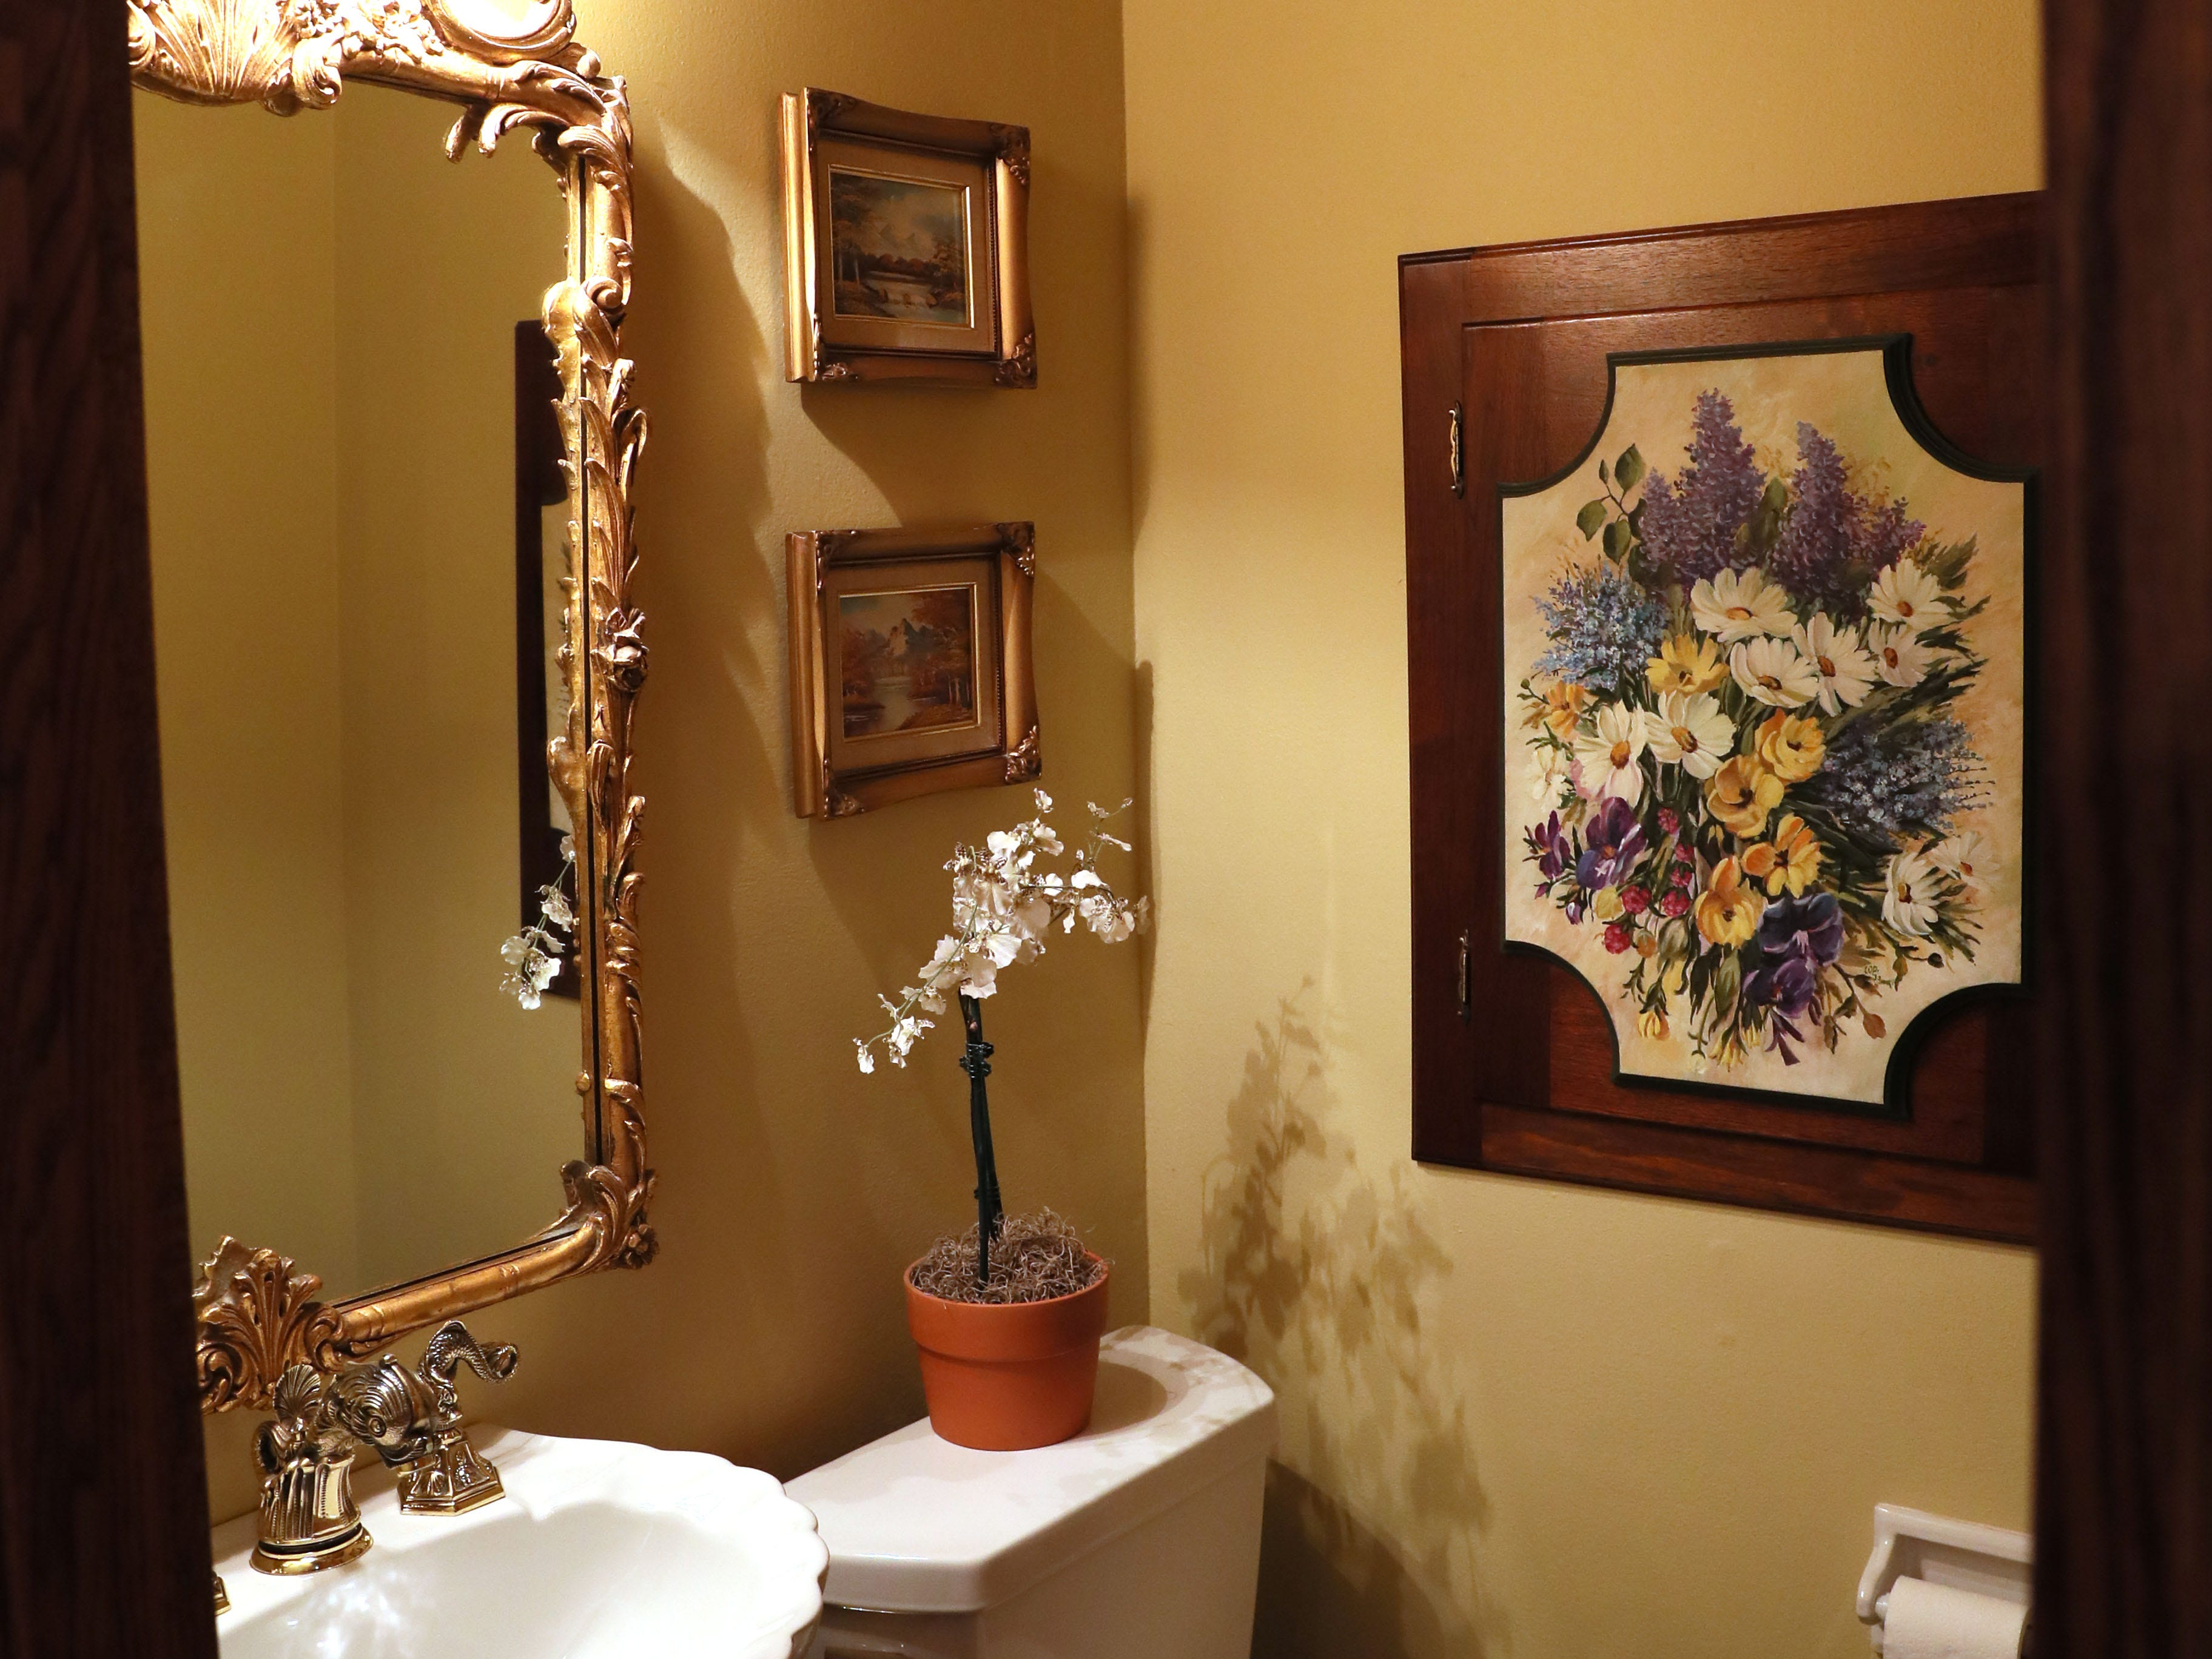 The powder room is painted in a soothing yellow.